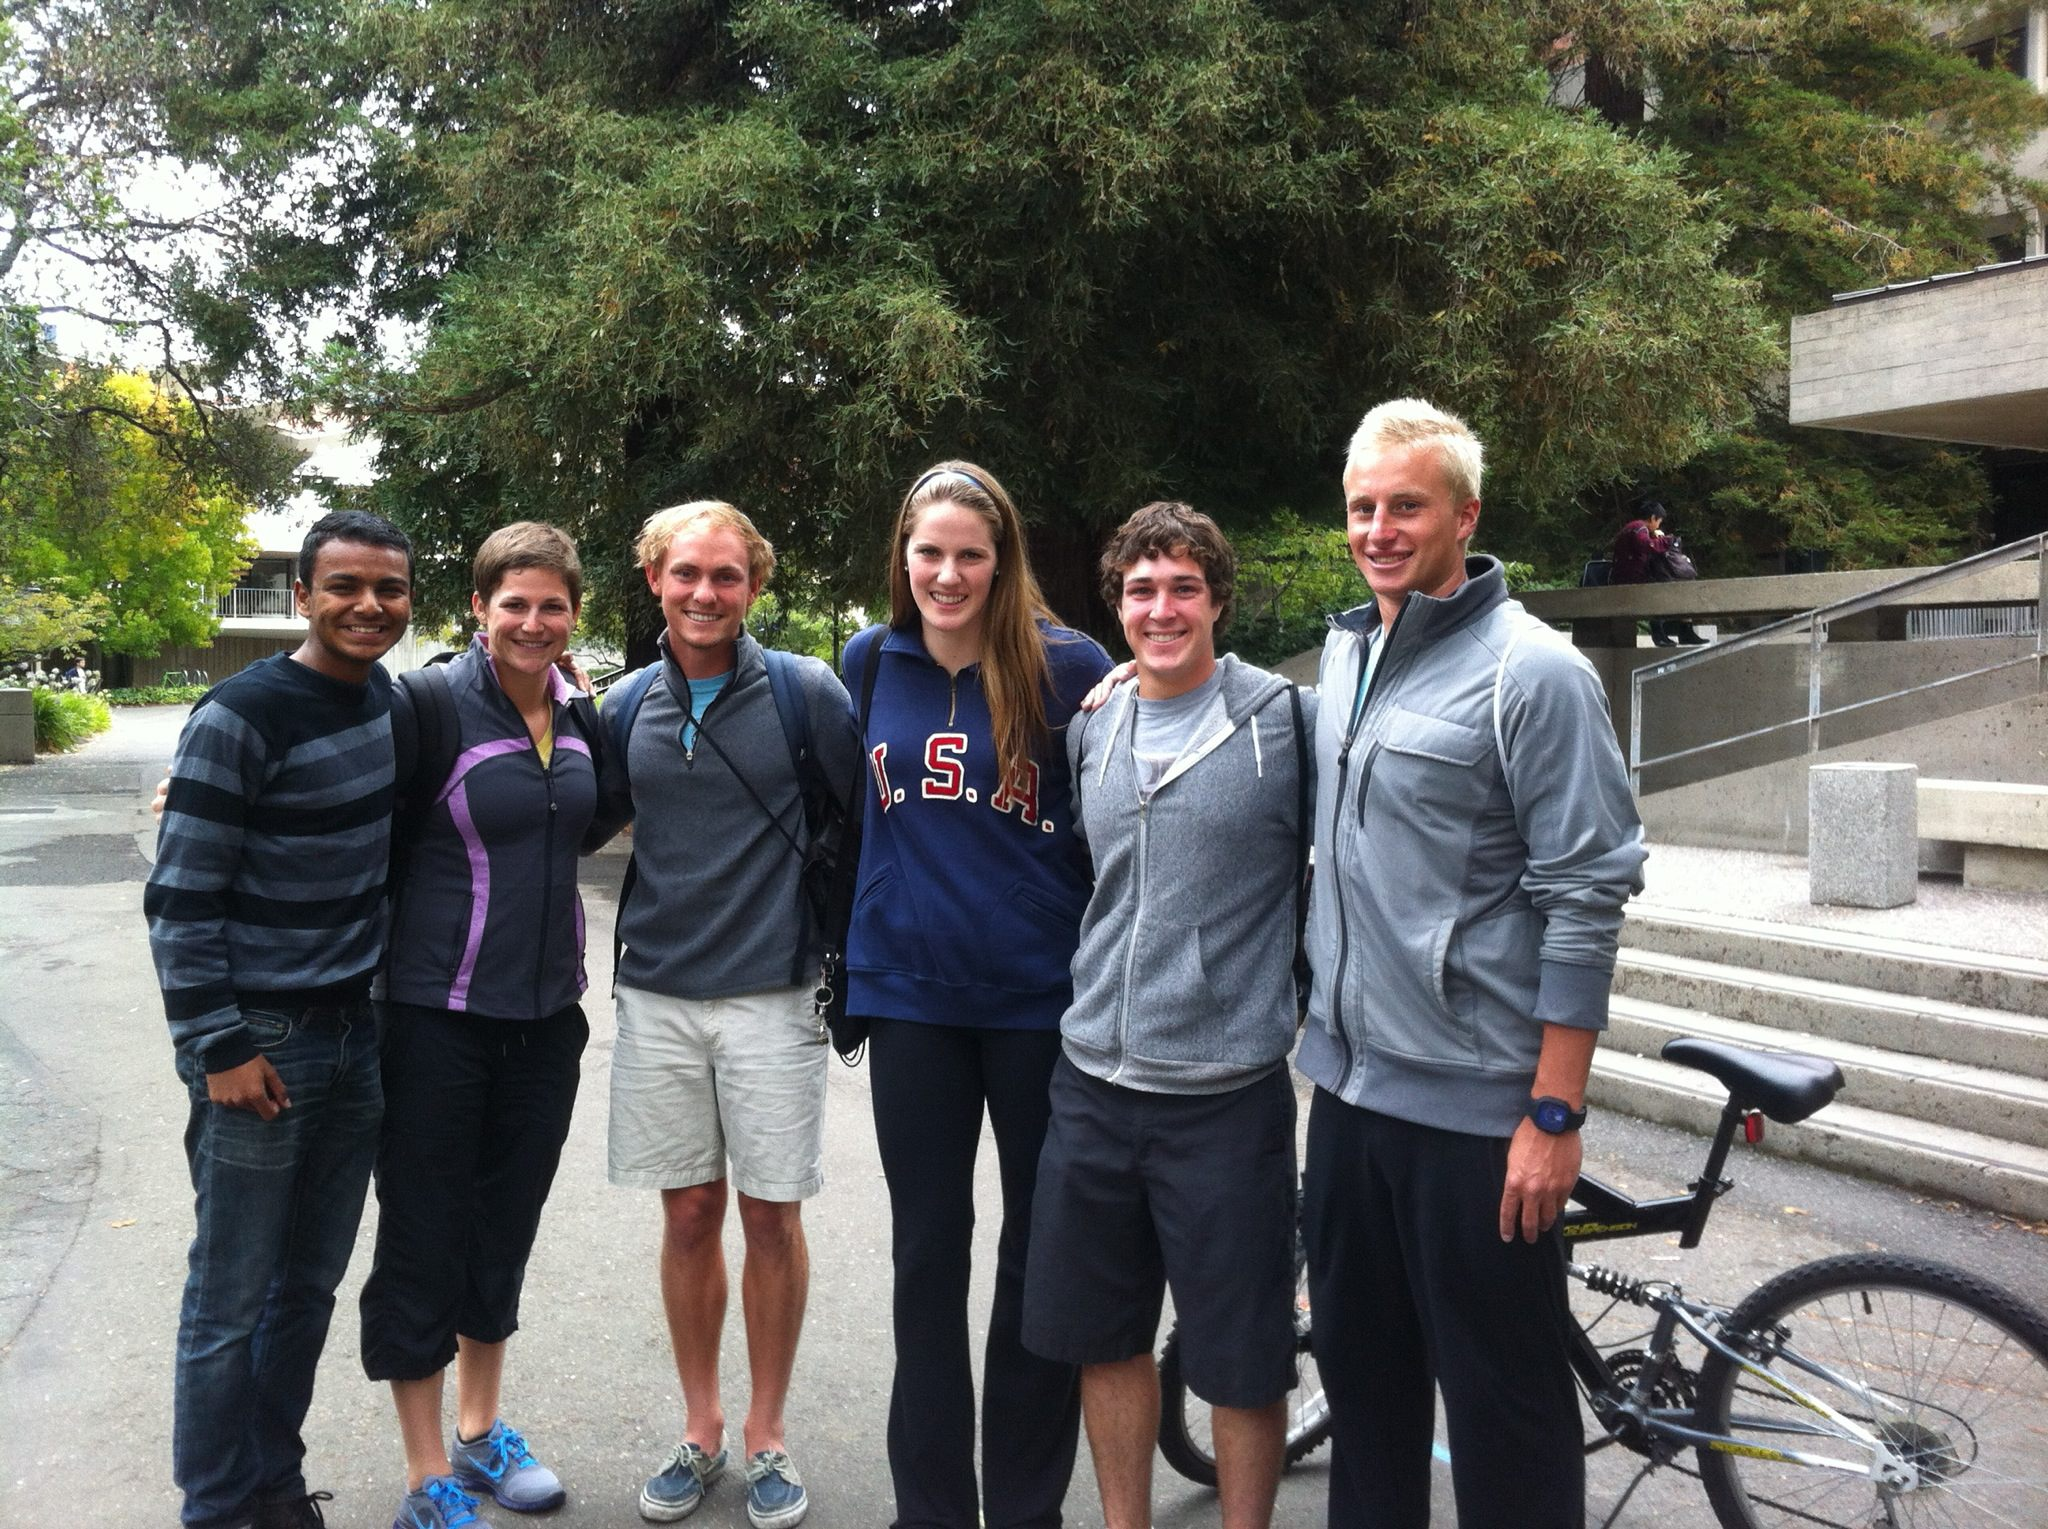 Missy Franklin was spotted visiting campus earlier this semester.